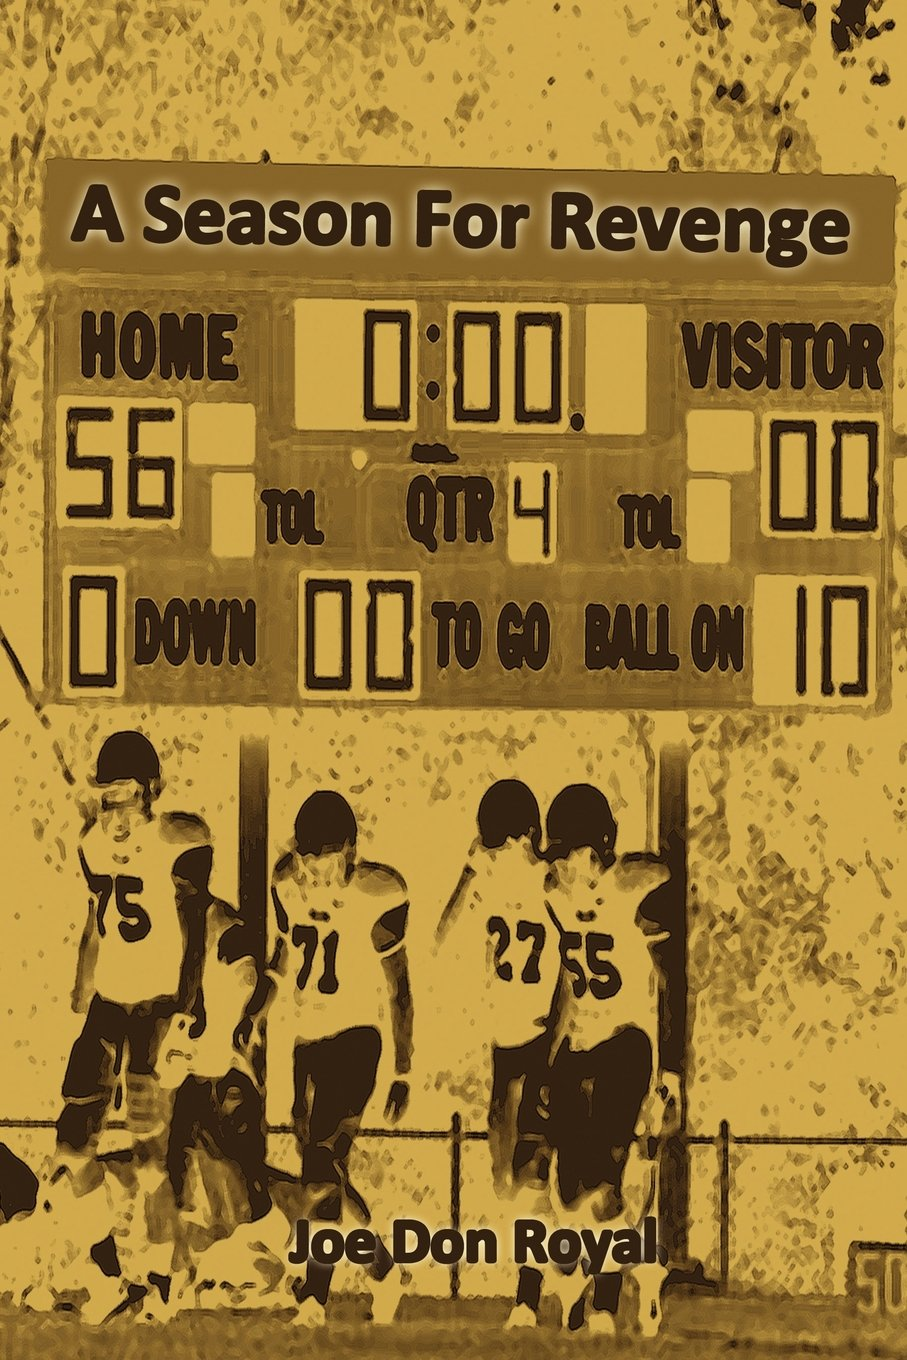 Image OfA Season For Revenge